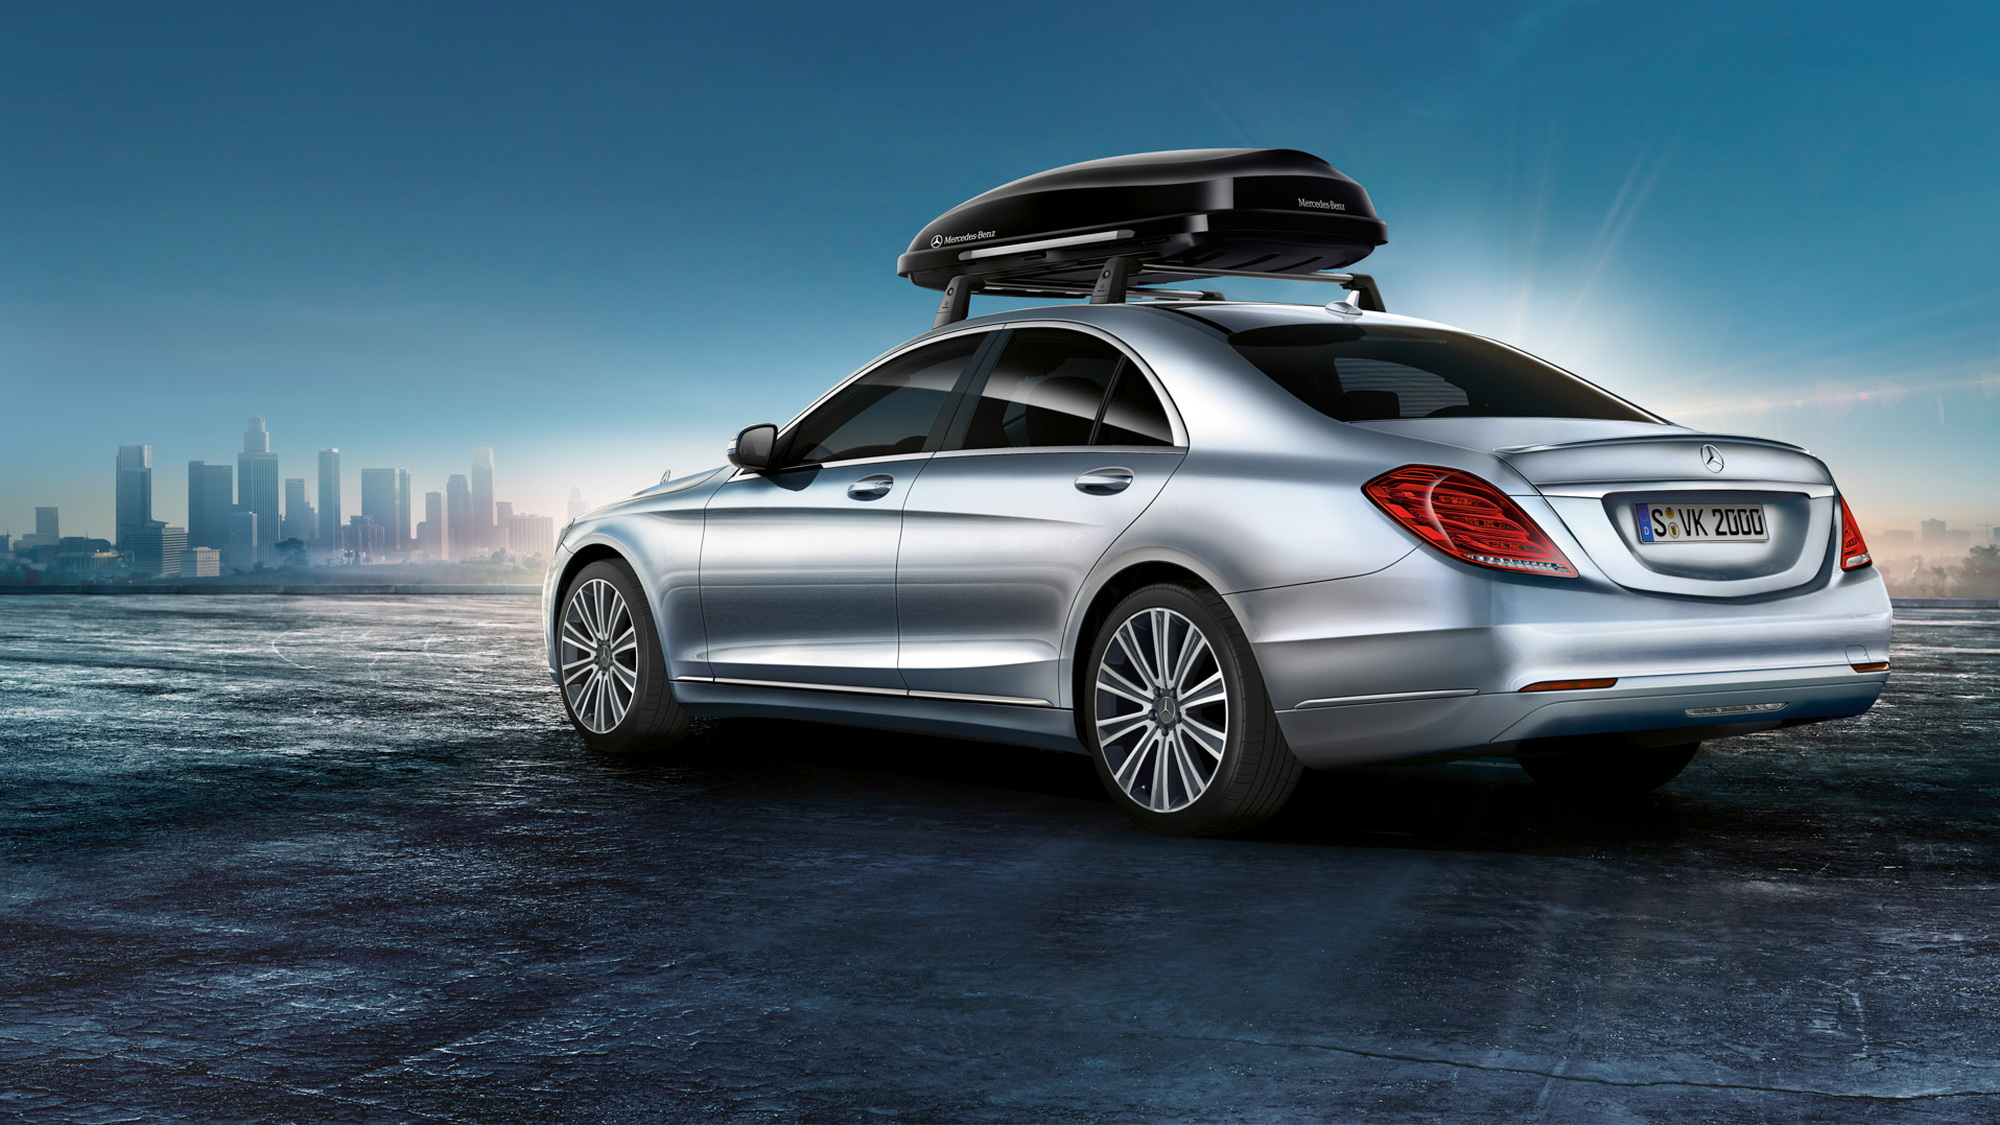 2014 Mercedes-Benz S-Class Accessories